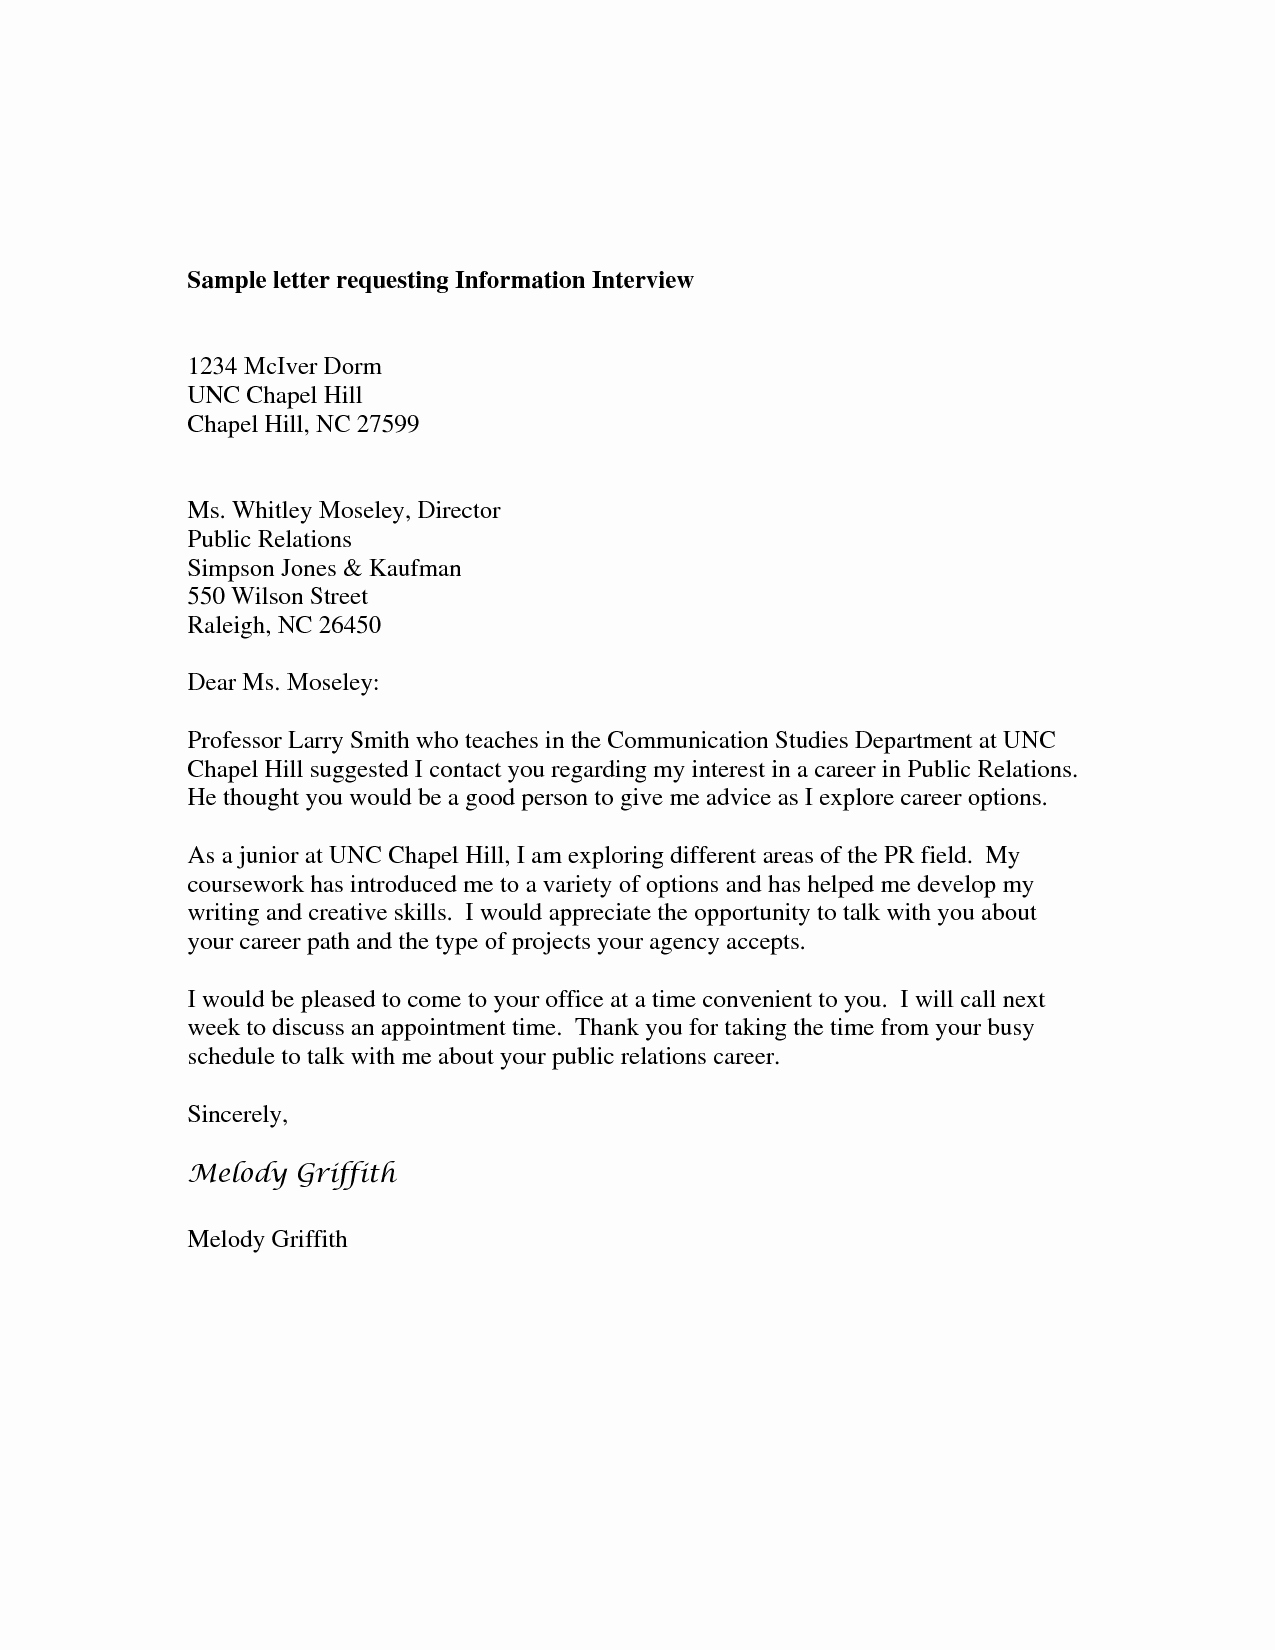 Sample Of Petition Letter Inspirational Sample Letter Request for Information